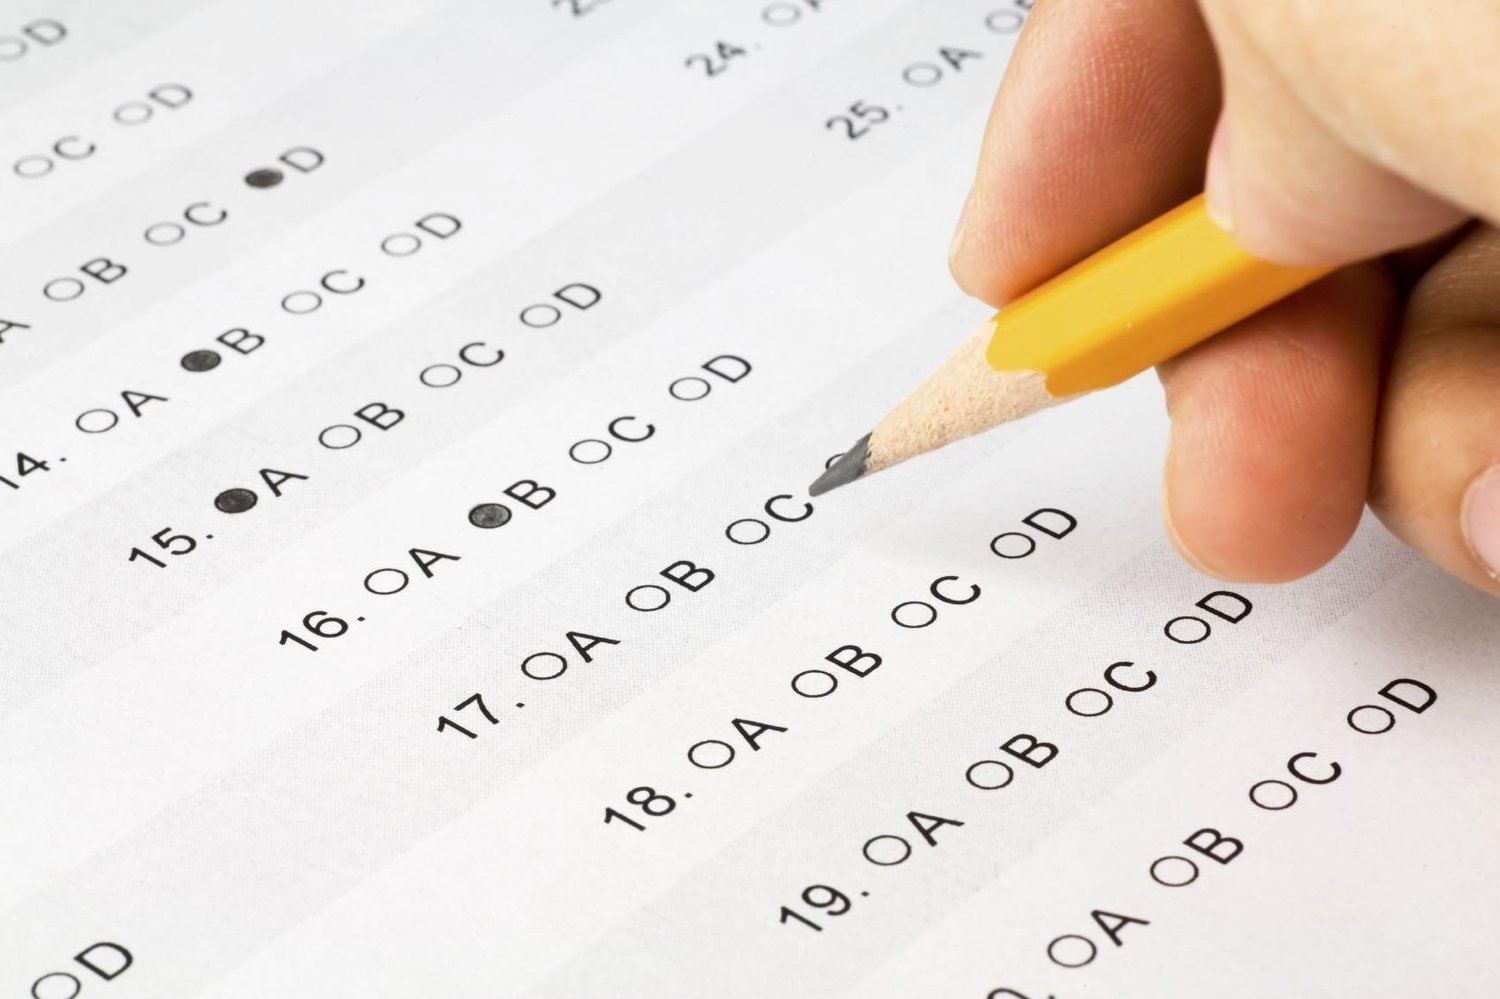 Close up image of a multiple choice test